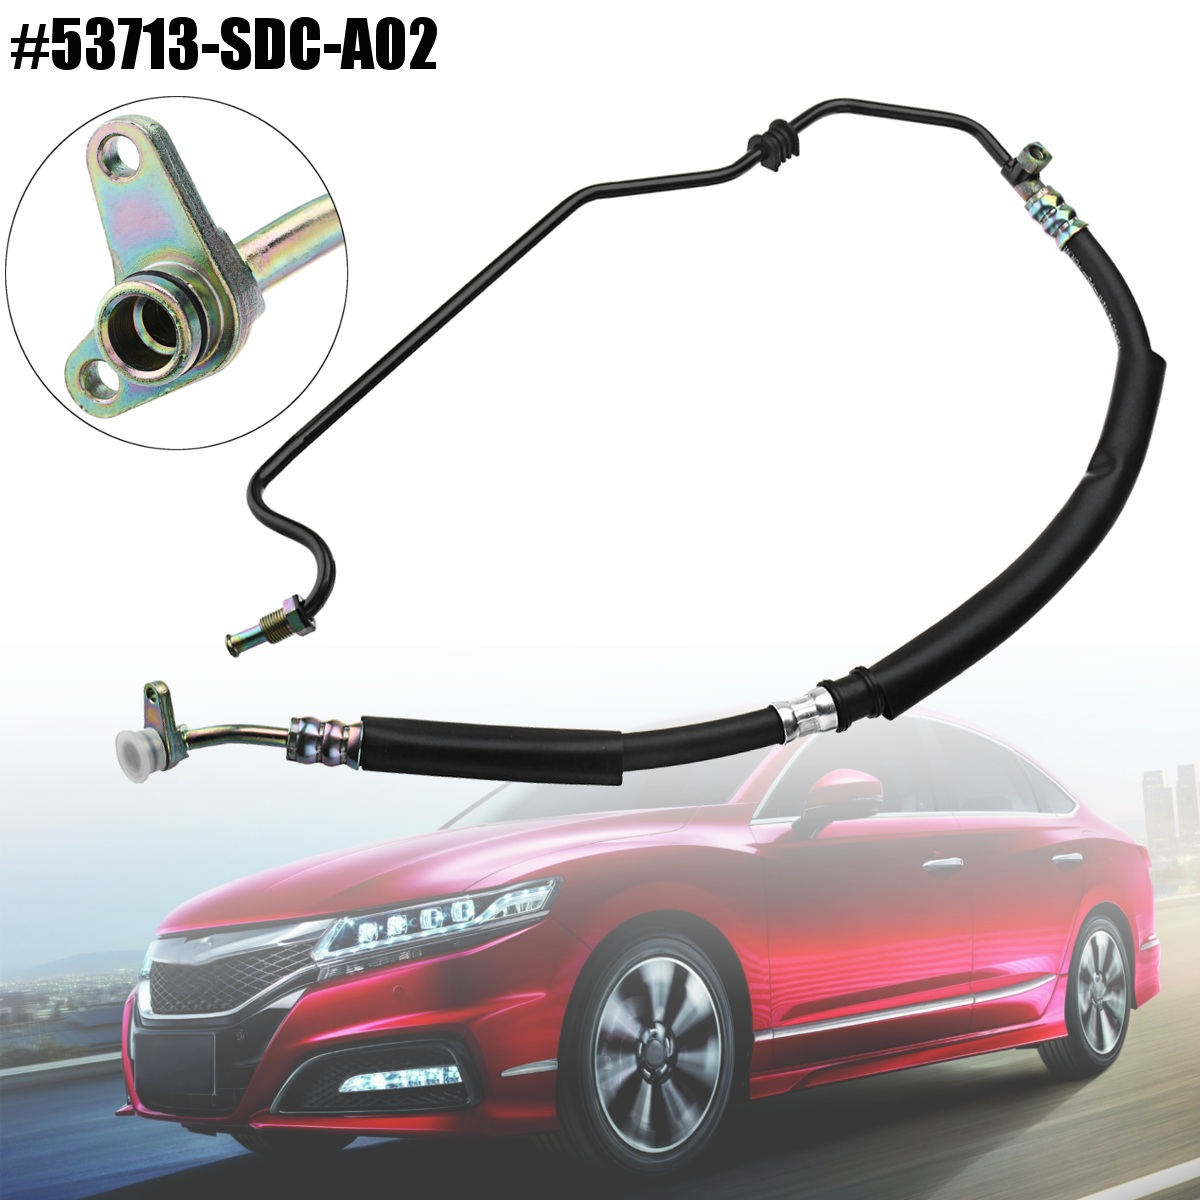 Power Steering Pressure Hose Line Assembly For Honda TSX /Accord 2.4L 2004-2008 53713-SDC-A02 53713-SDA-A52 power steering pump for honda acura rsx tsx accord cr v element 56110pnba01 215419 9319299 psp2225h 96360m 965419 56110pnb a0